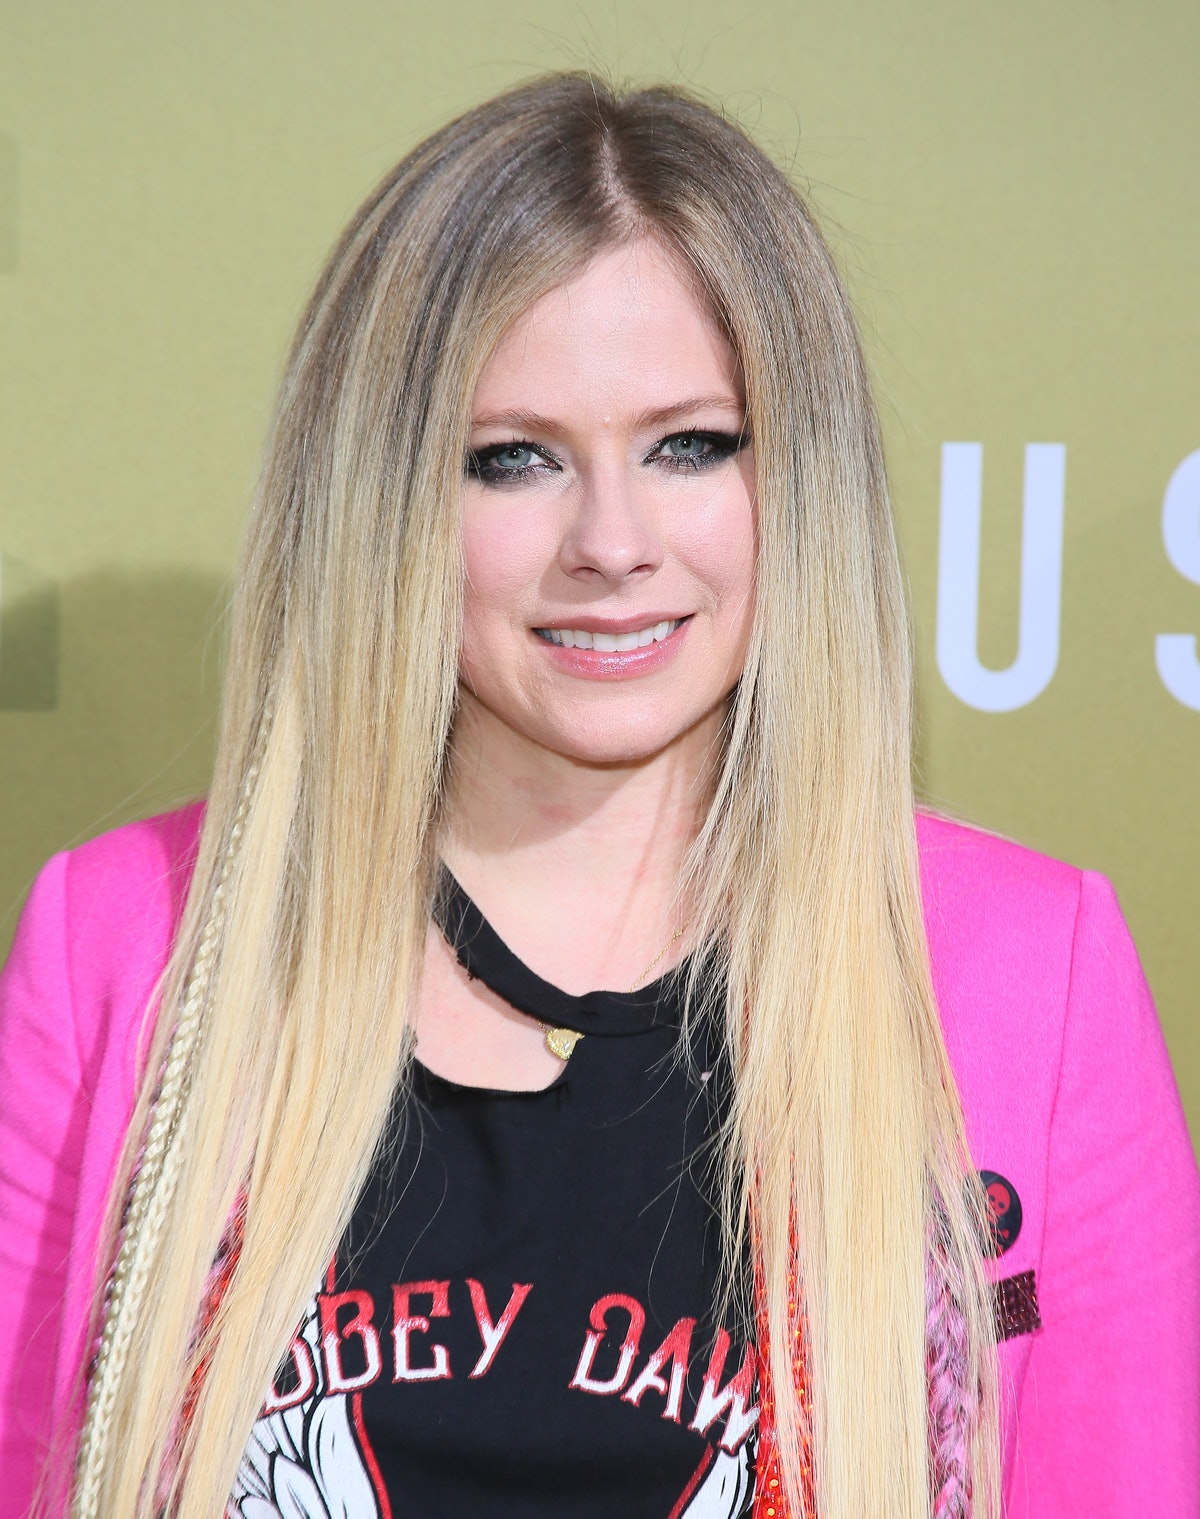 """HOLLYWOOD, CALIFORNIA - MAY 08: Avril Lavigne attends the premiere of MGM's """"The Hustle"""" at ArcLight..."""